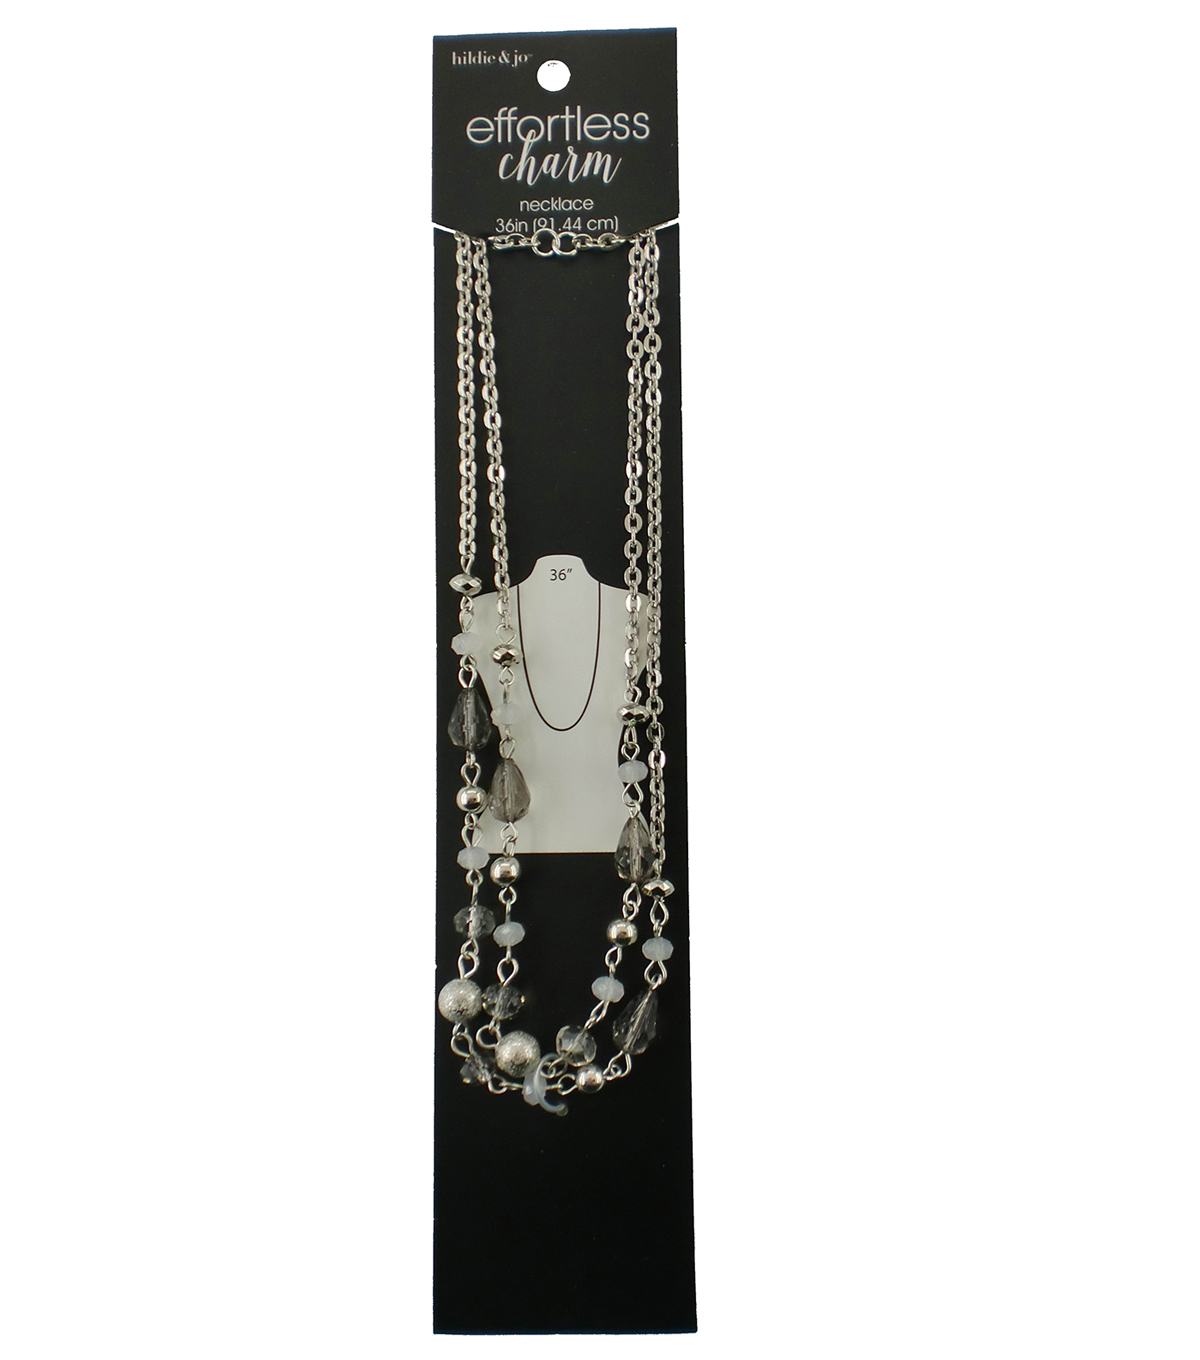 hildie & jo™ Effortless Charm Silver Necklace-Gray & Silver Beads